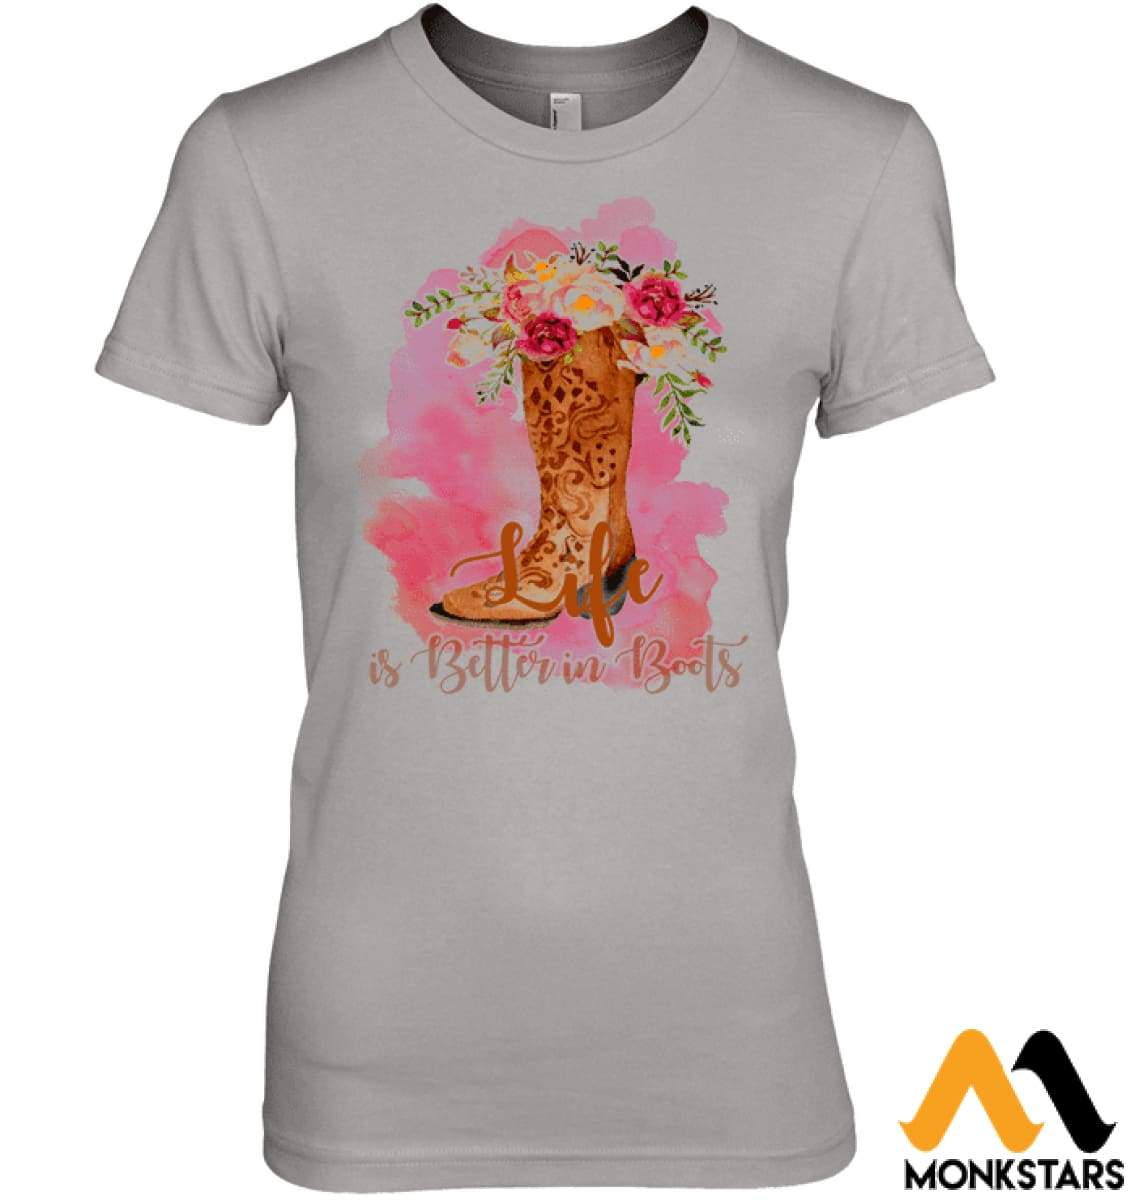 6406f9141 Pink Country Girl Shirts - DREAMWORKS